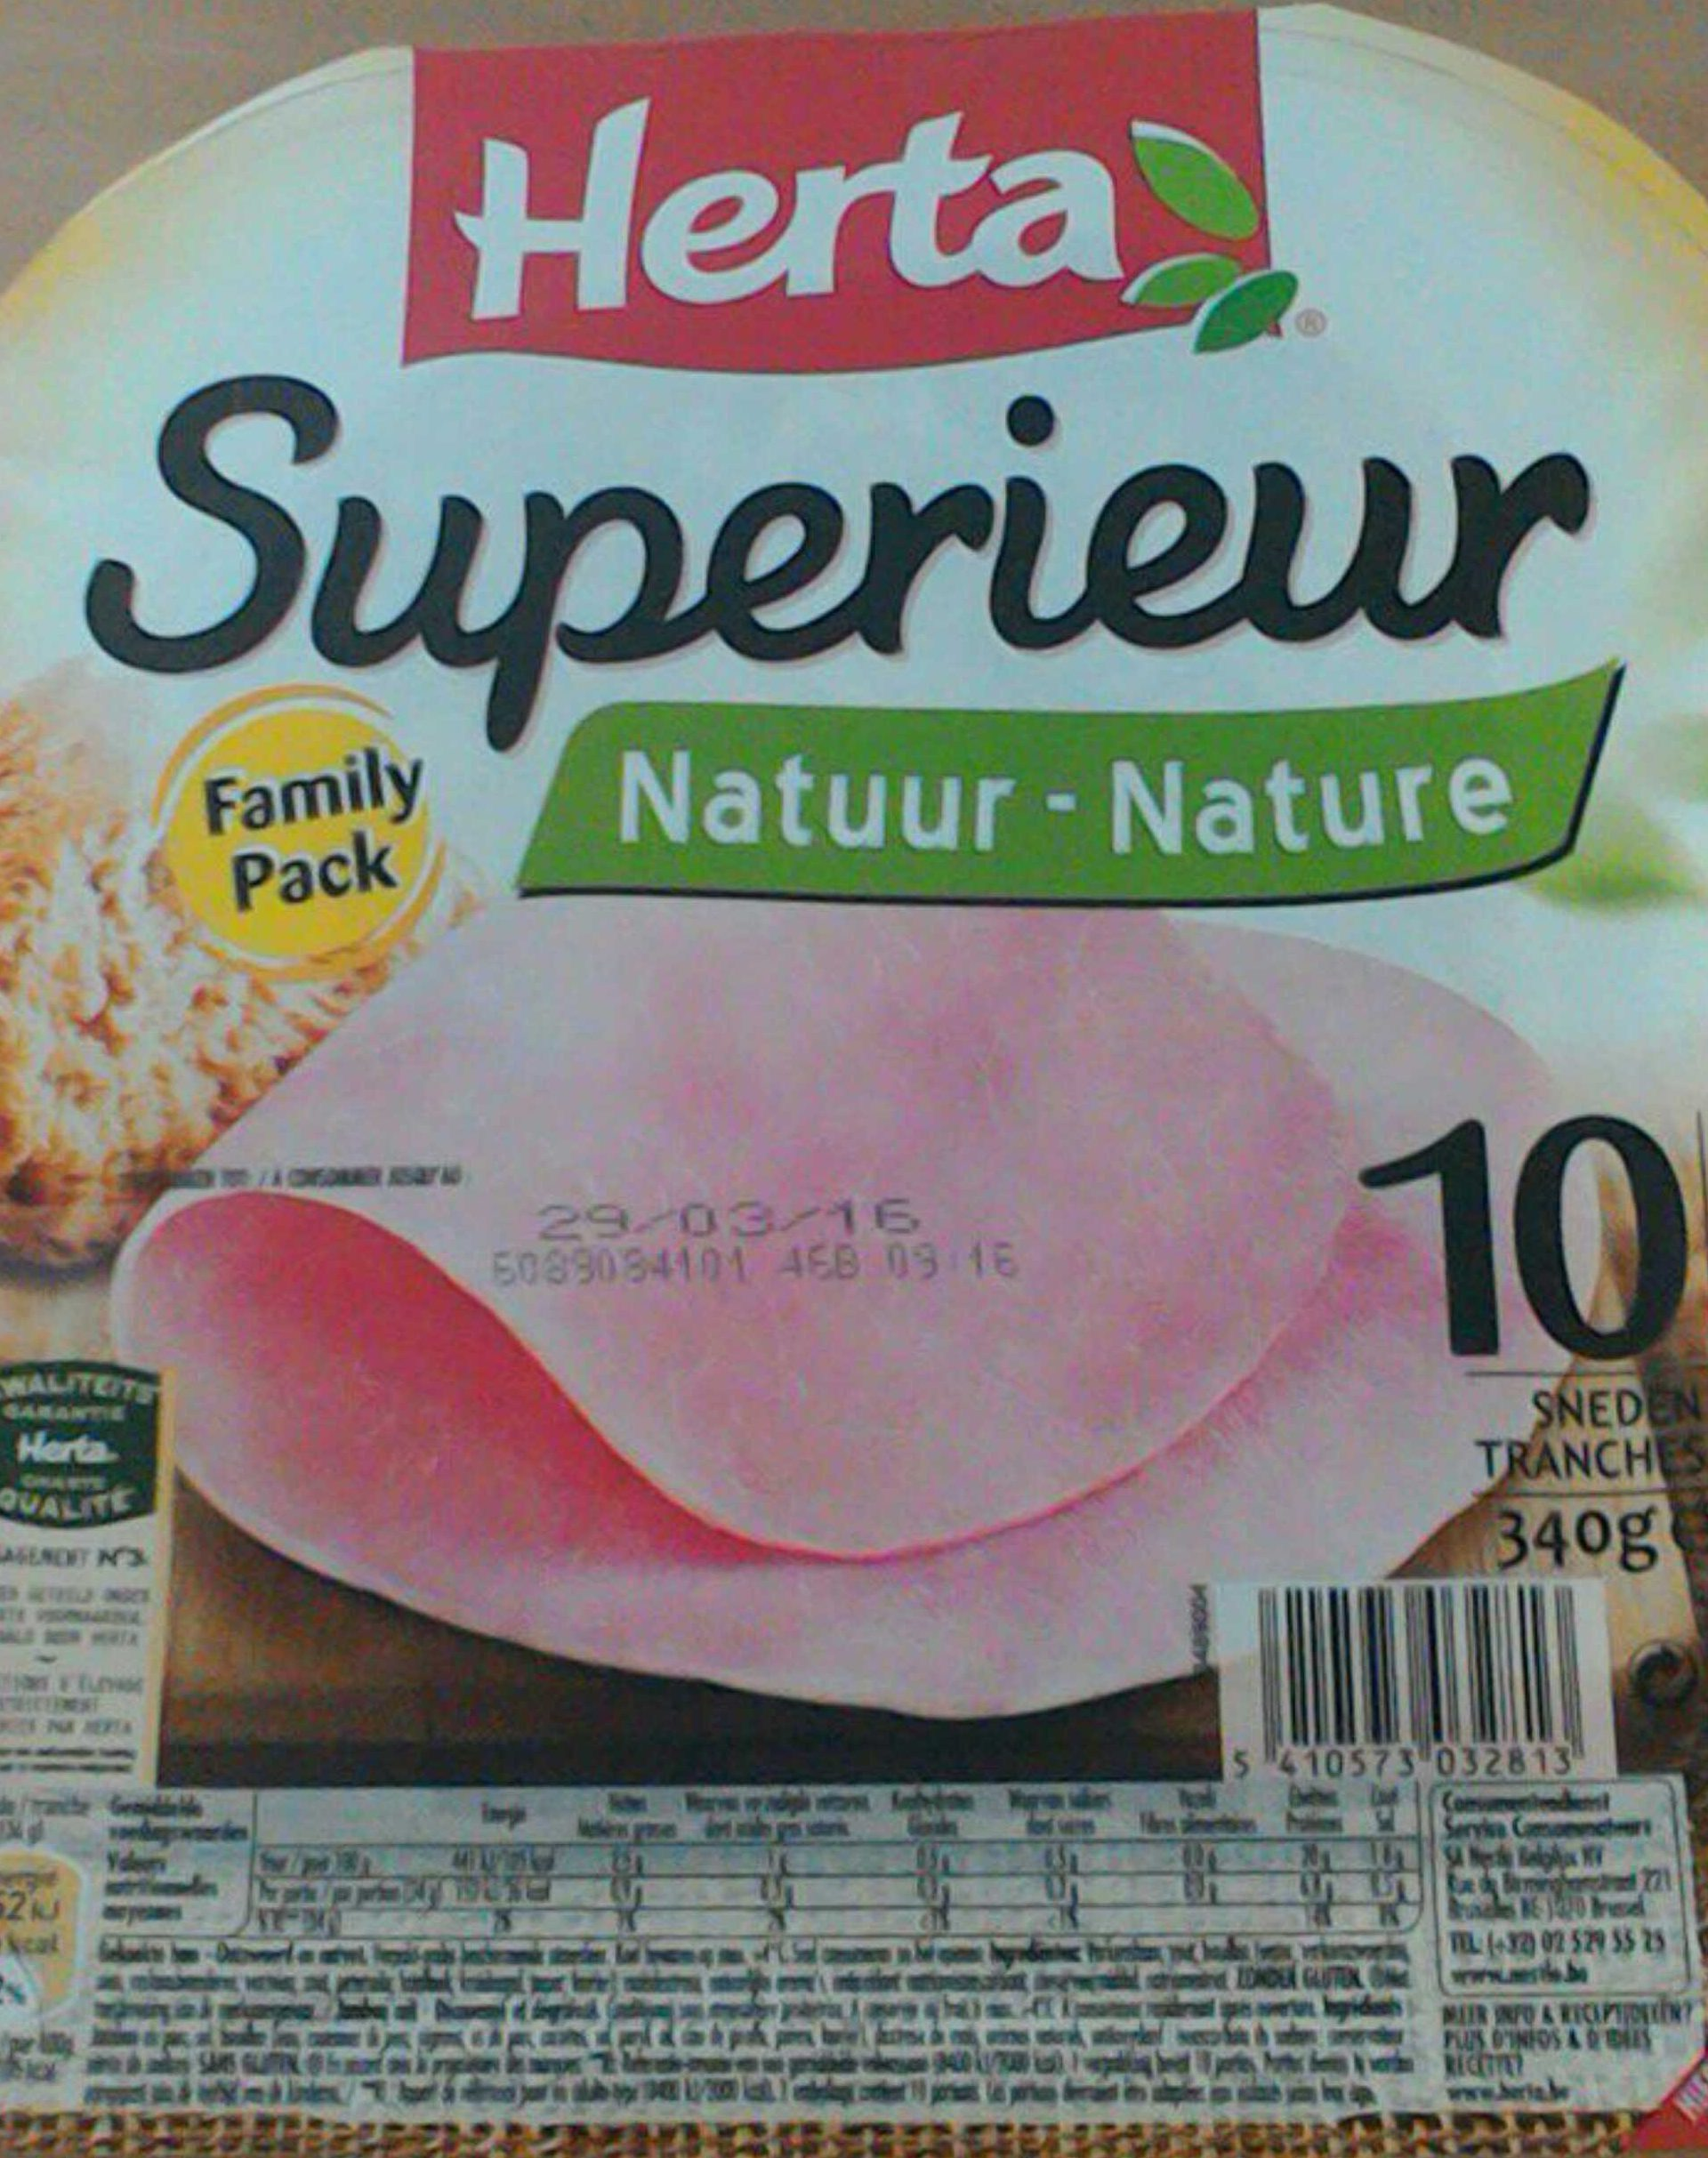 Superieur Nature (family pack) - Product - fr